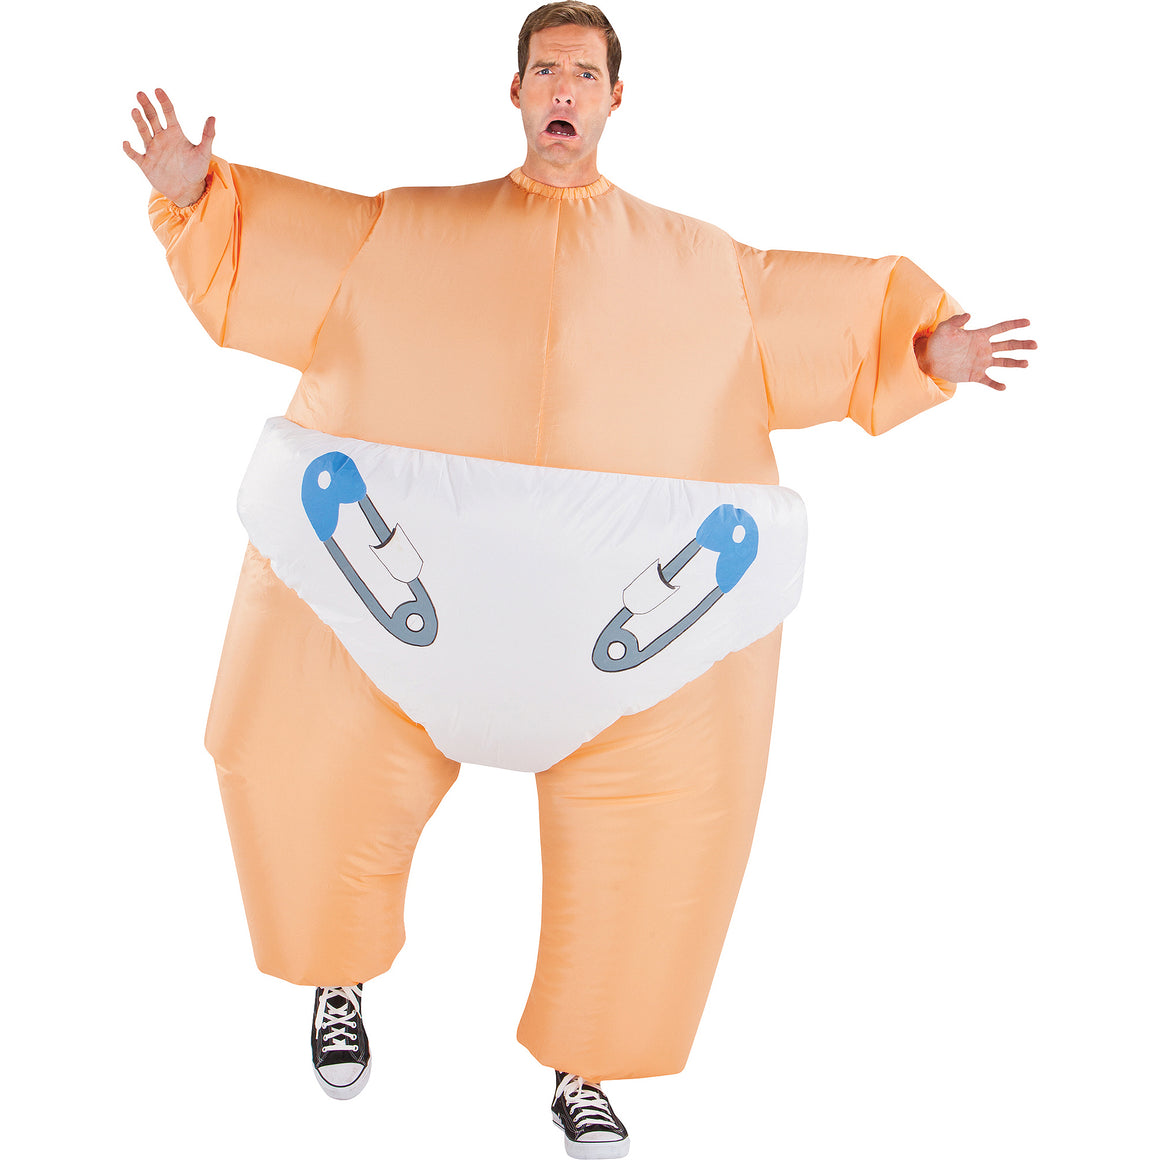 Big Baby Adult Costume